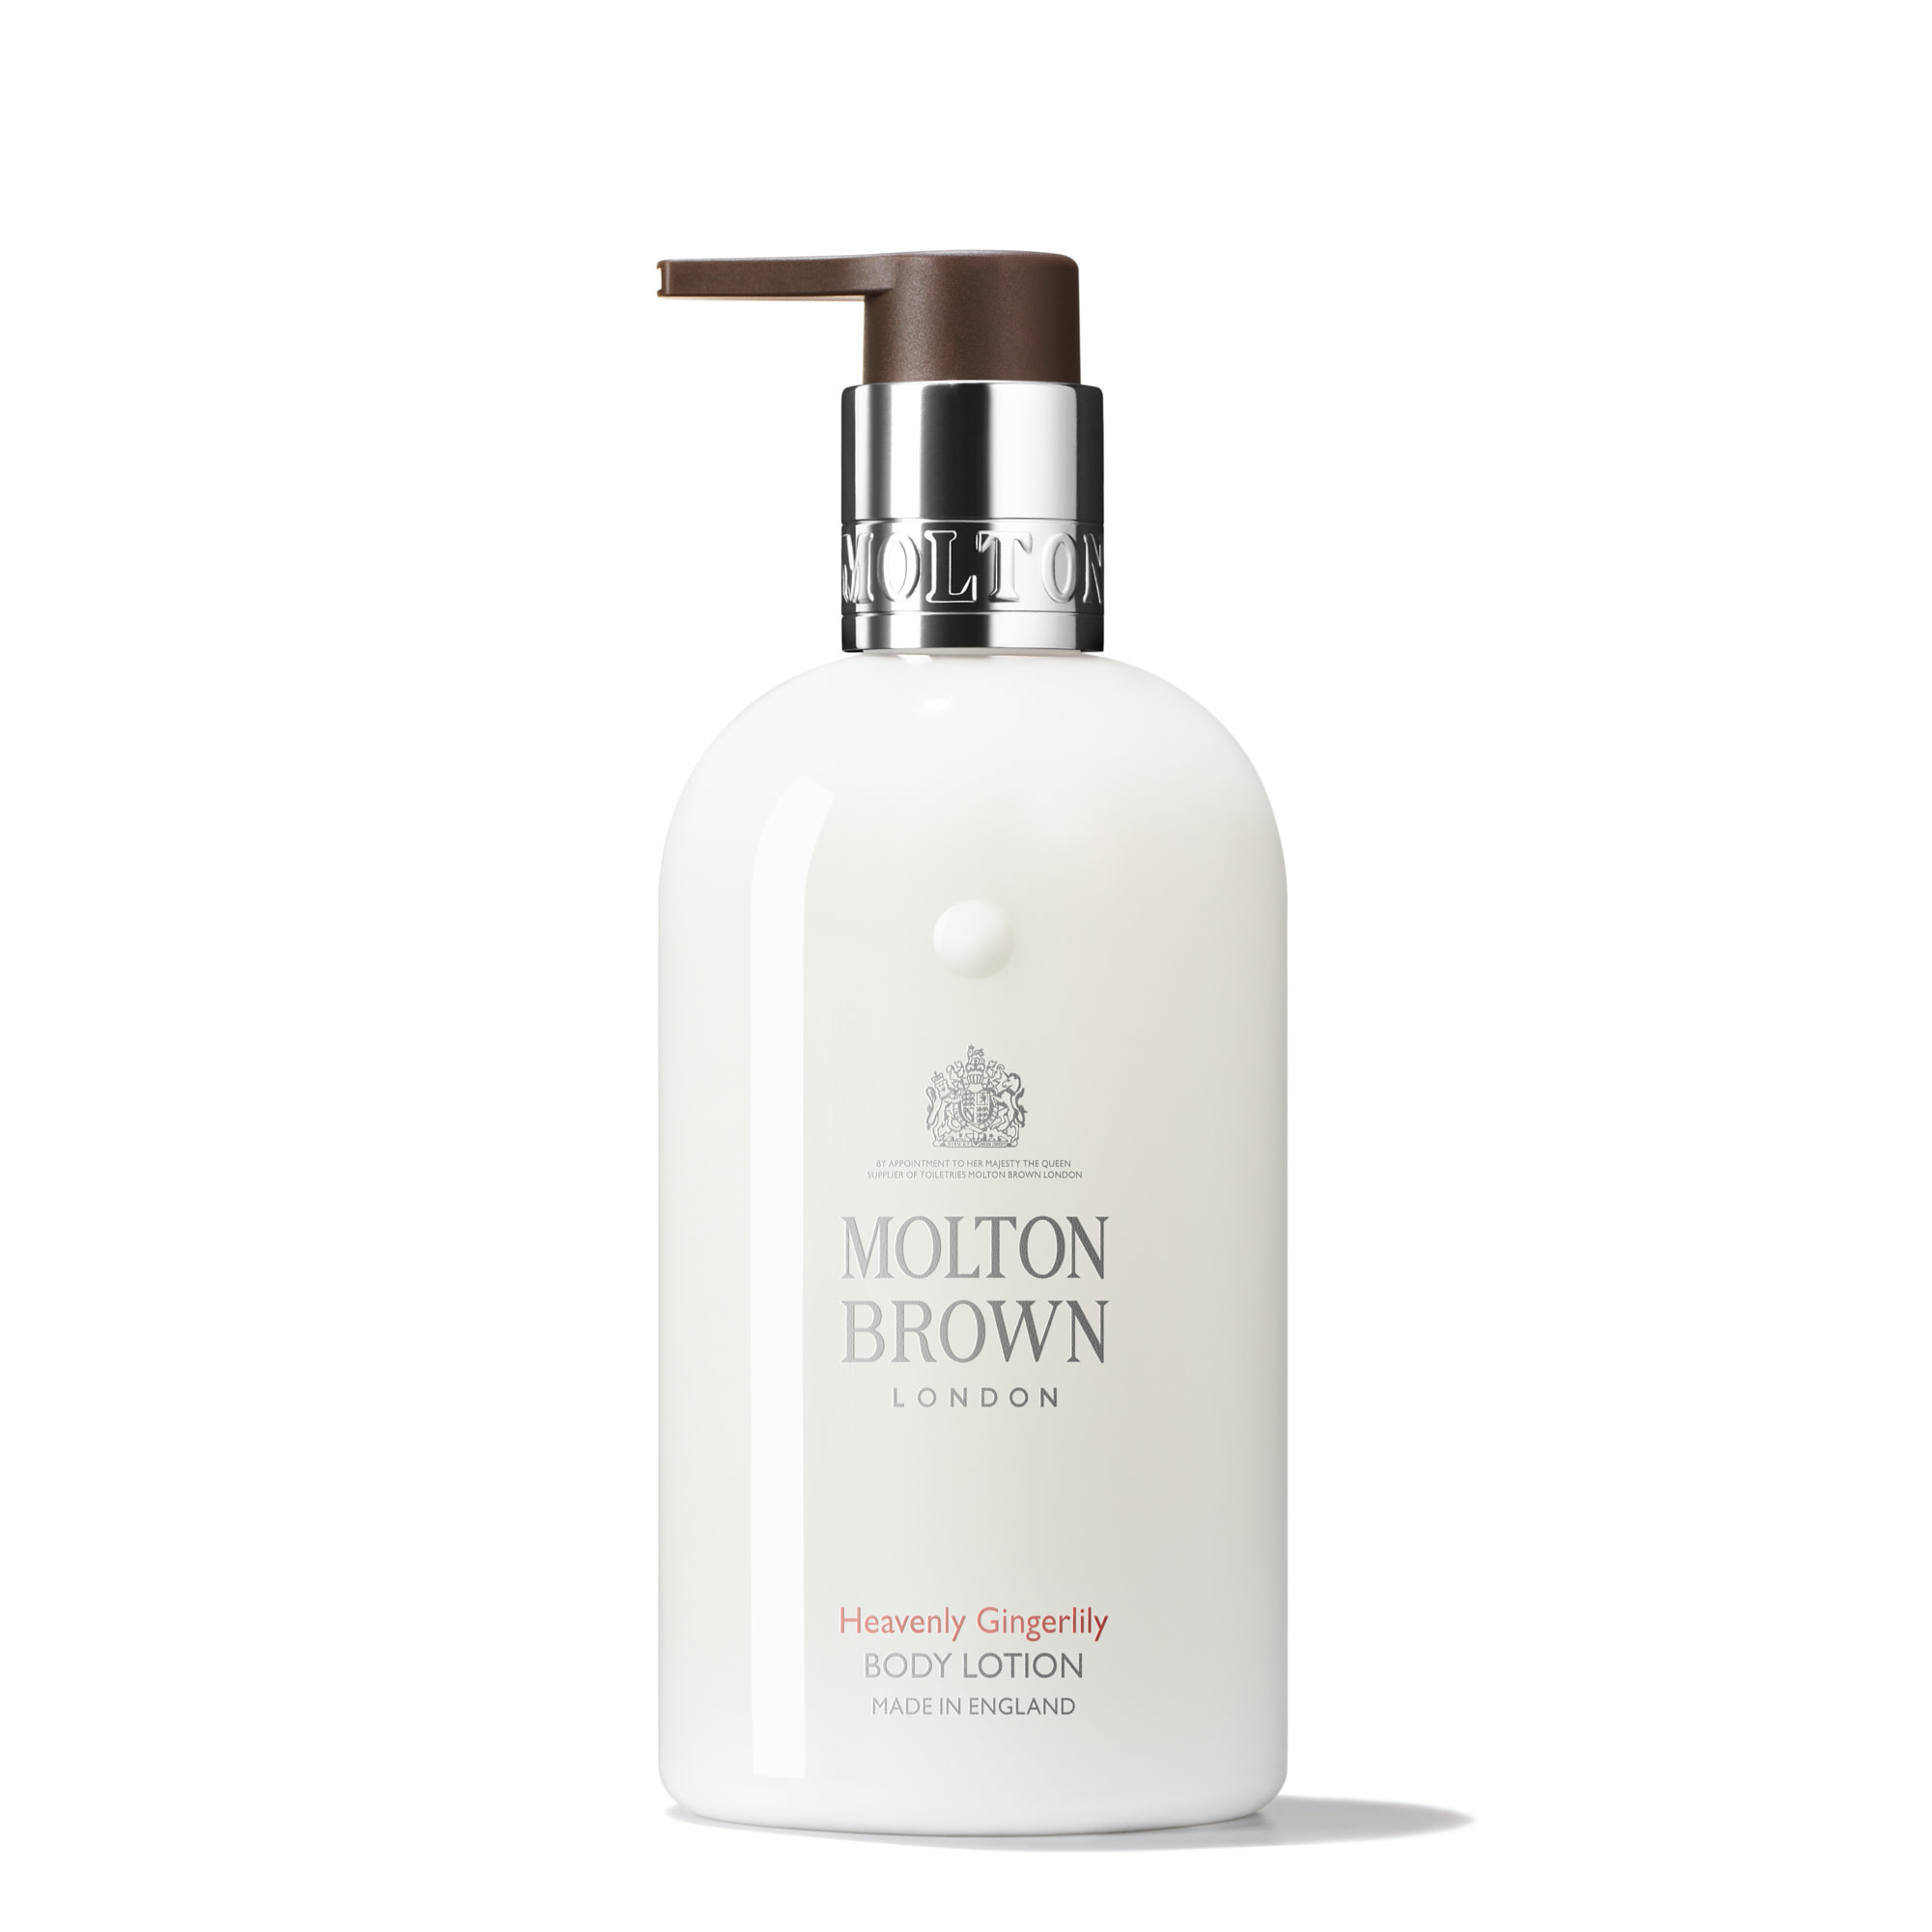 Heavenly Gingerly body lotion-5